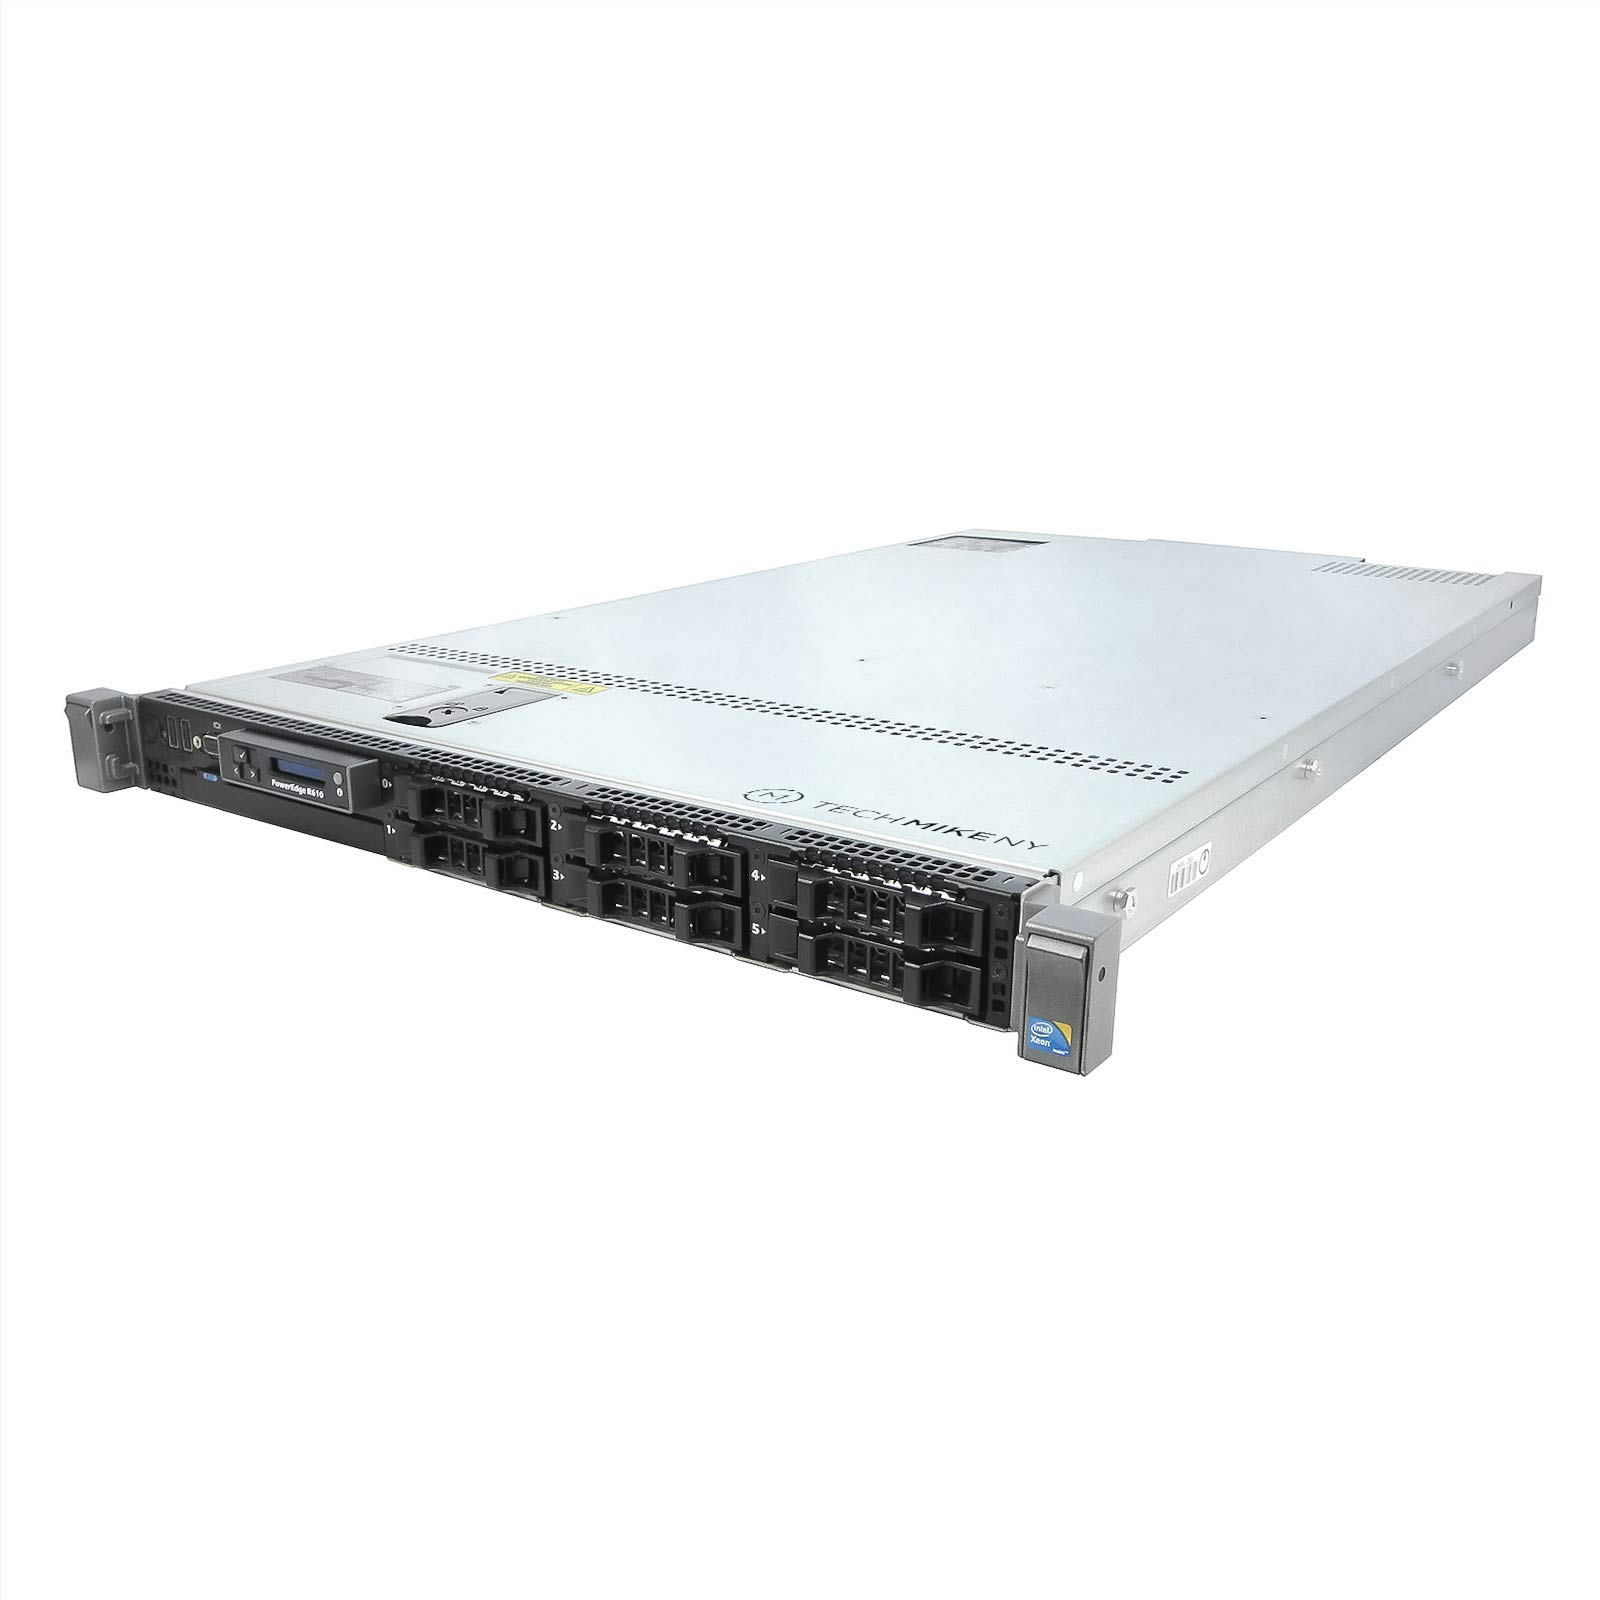 Enterprise Dell PowerEdge R610 Server 2 x 2.66Ghz X5650 6C2 x 146GB 15K SAS (Renewed)